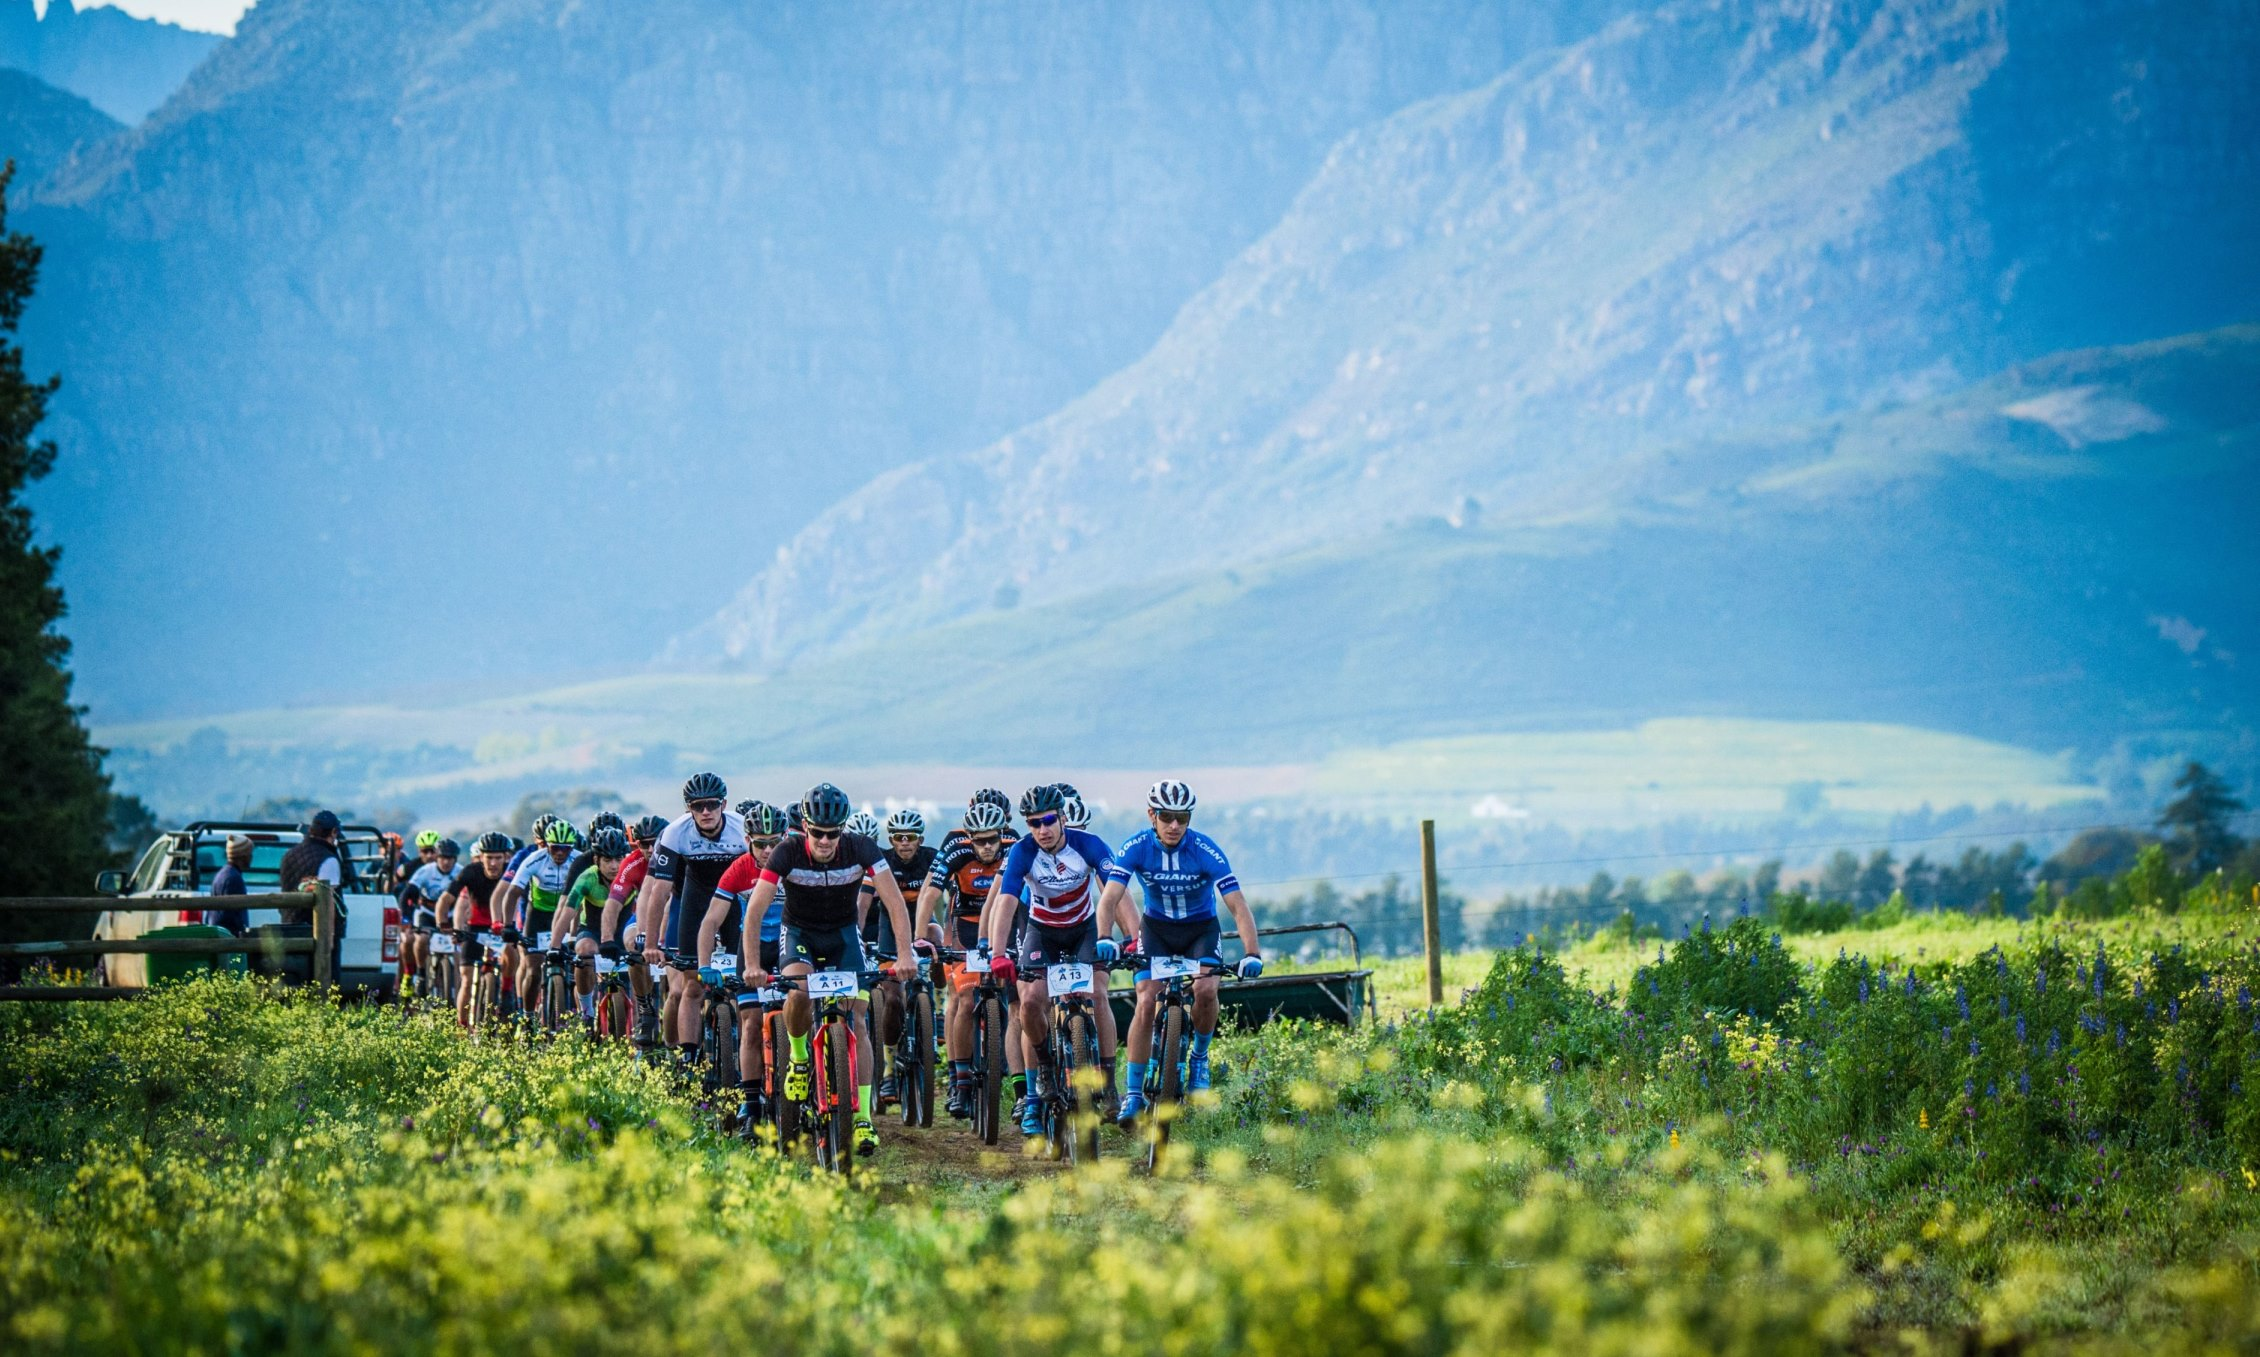 Prize Money and Sponsor Prizes up for grabs at Fedhealth MTB Challenge